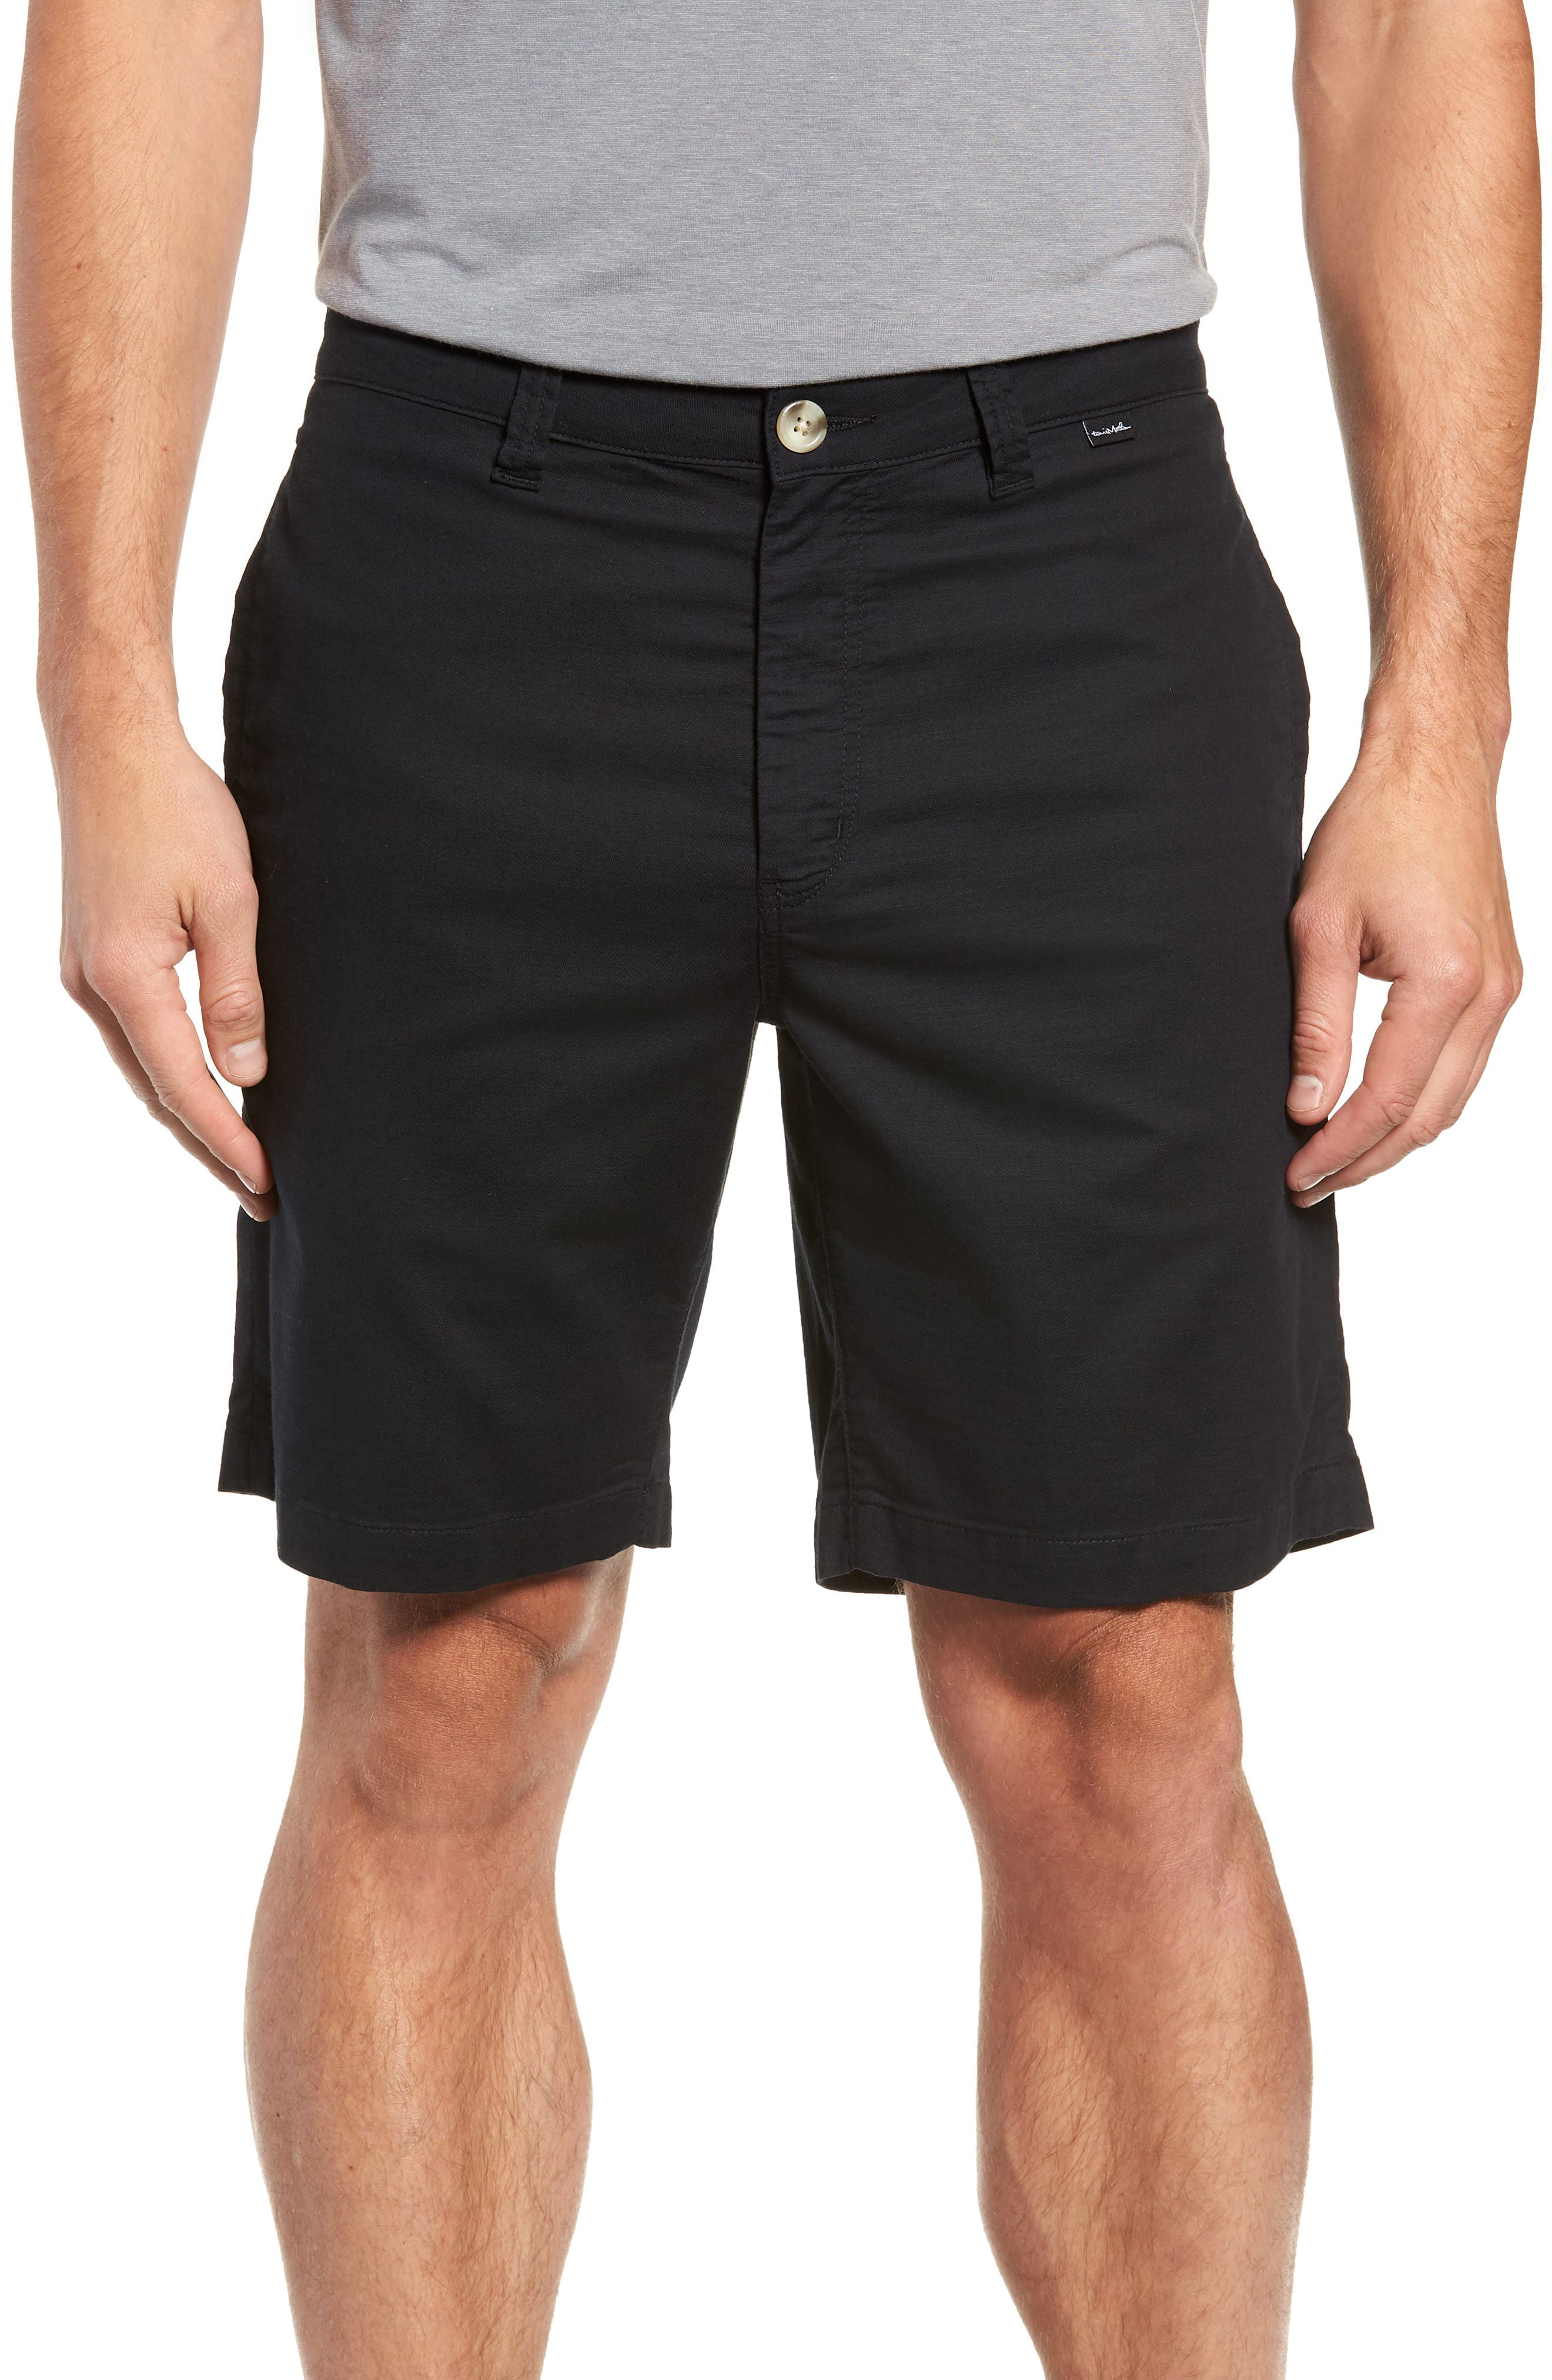 Swearengen Shorts,                         Main,                         color, BLACK